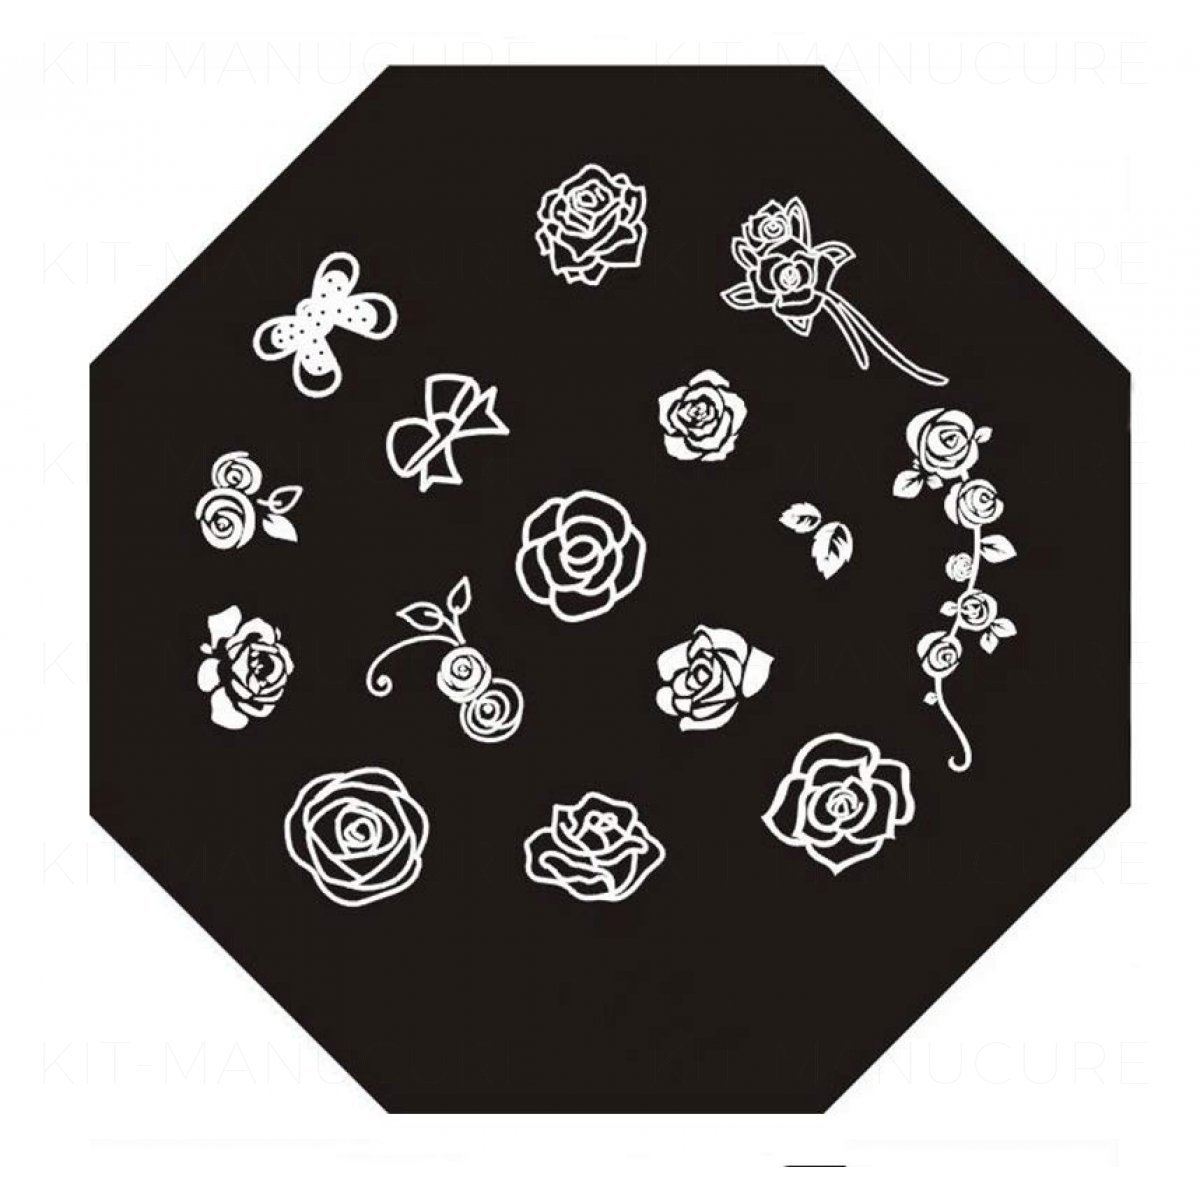 https://www.kit-manucure.com/488-thickbox_default/plaque-de-stamping-rose-fleur-et-noeud.jpg